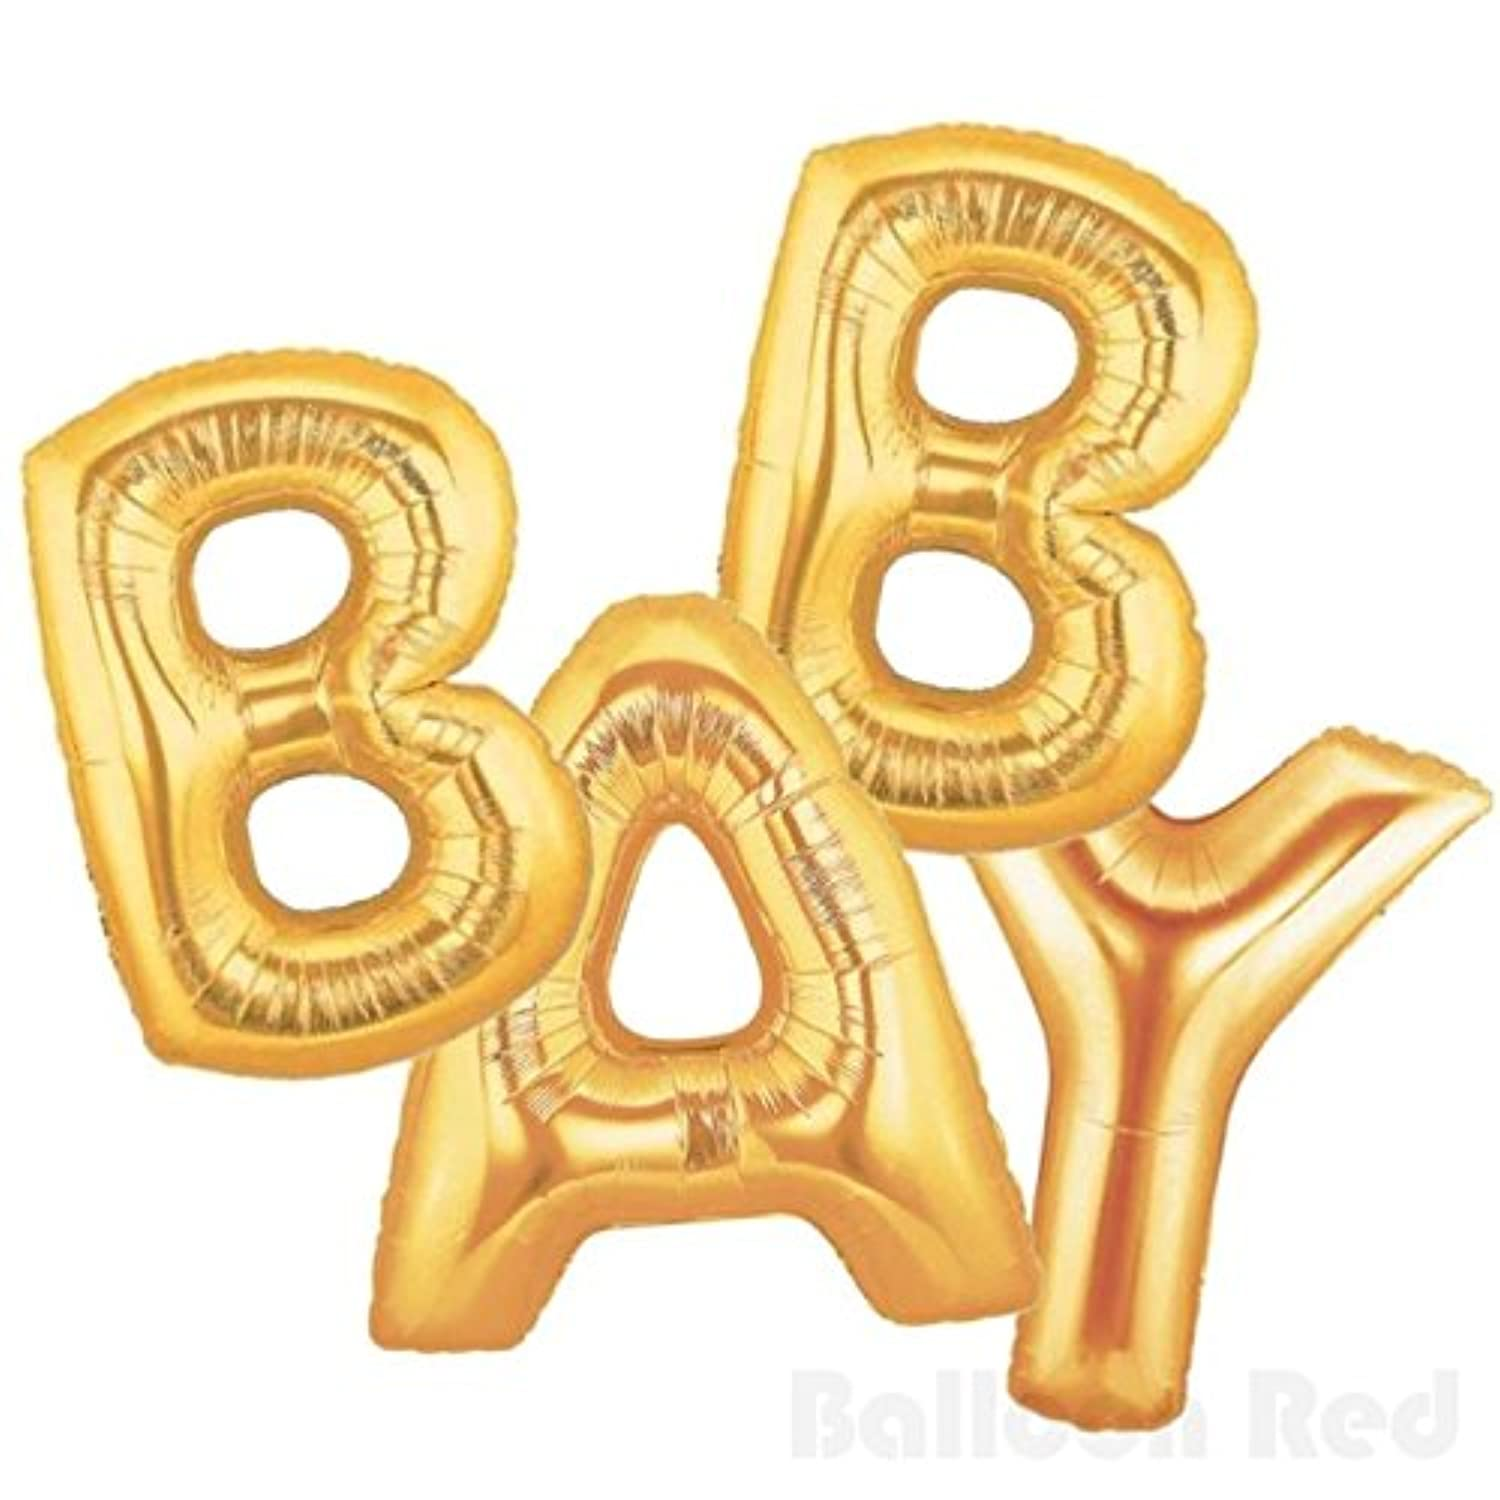 41cm Foil Mylar Balloons Bouquet for Wall Decoration (Premium Quality, Air-Fill Only), Matte Gold, Letters BABY